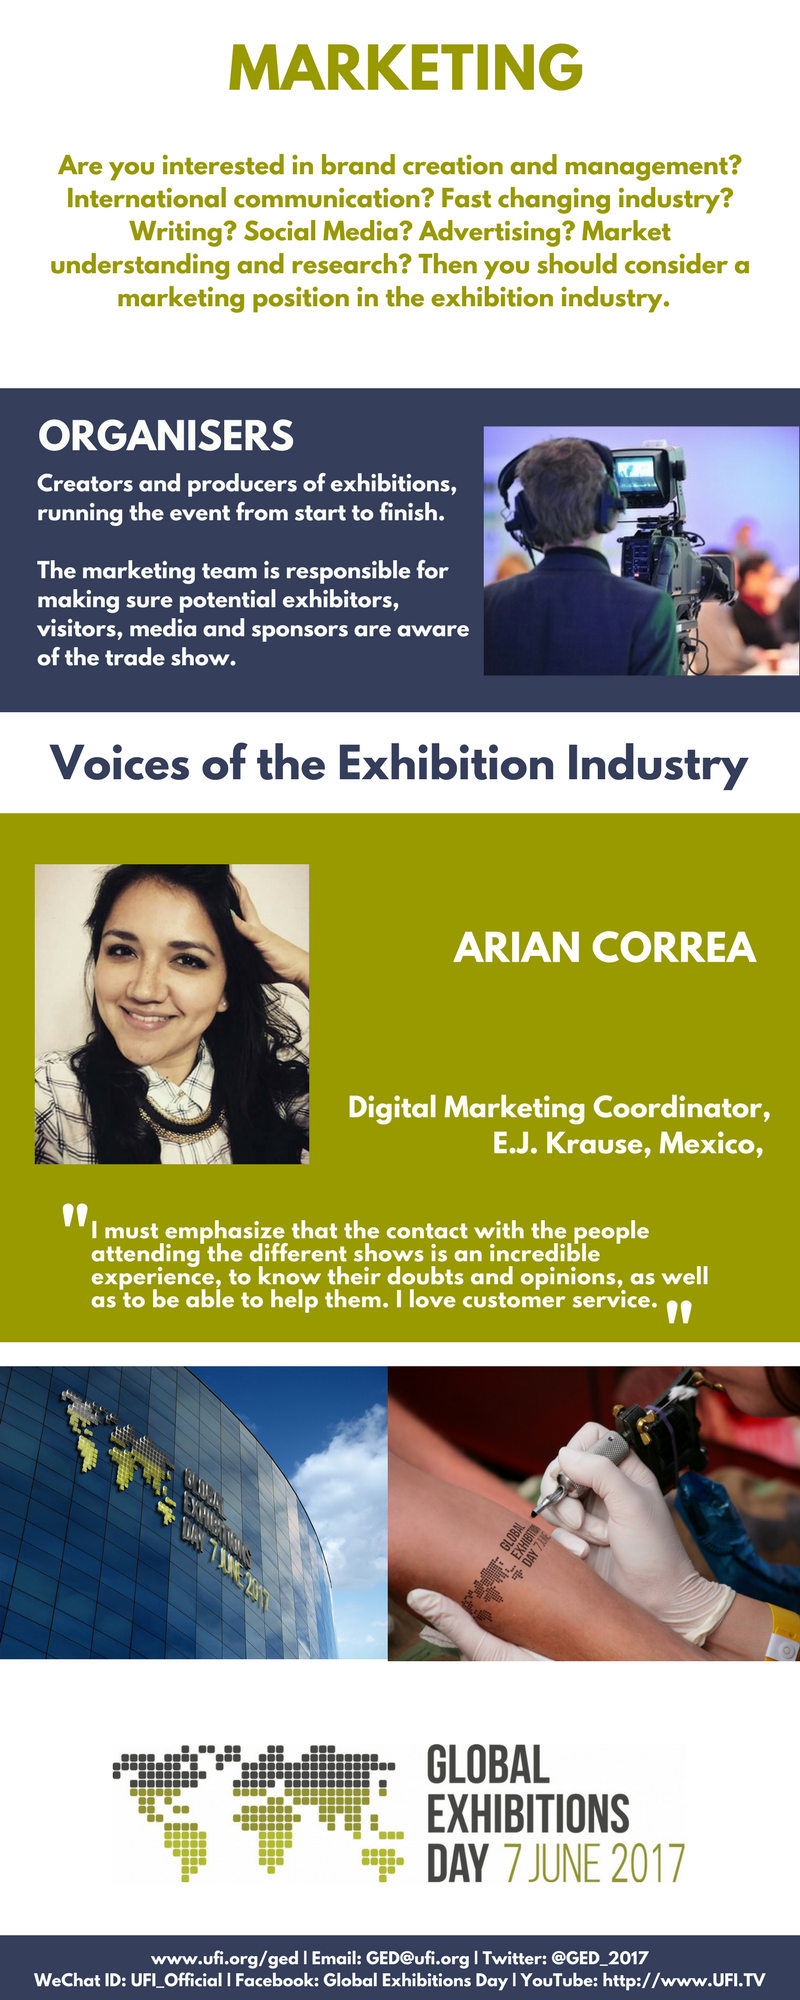 The voices of the exhibitions industry